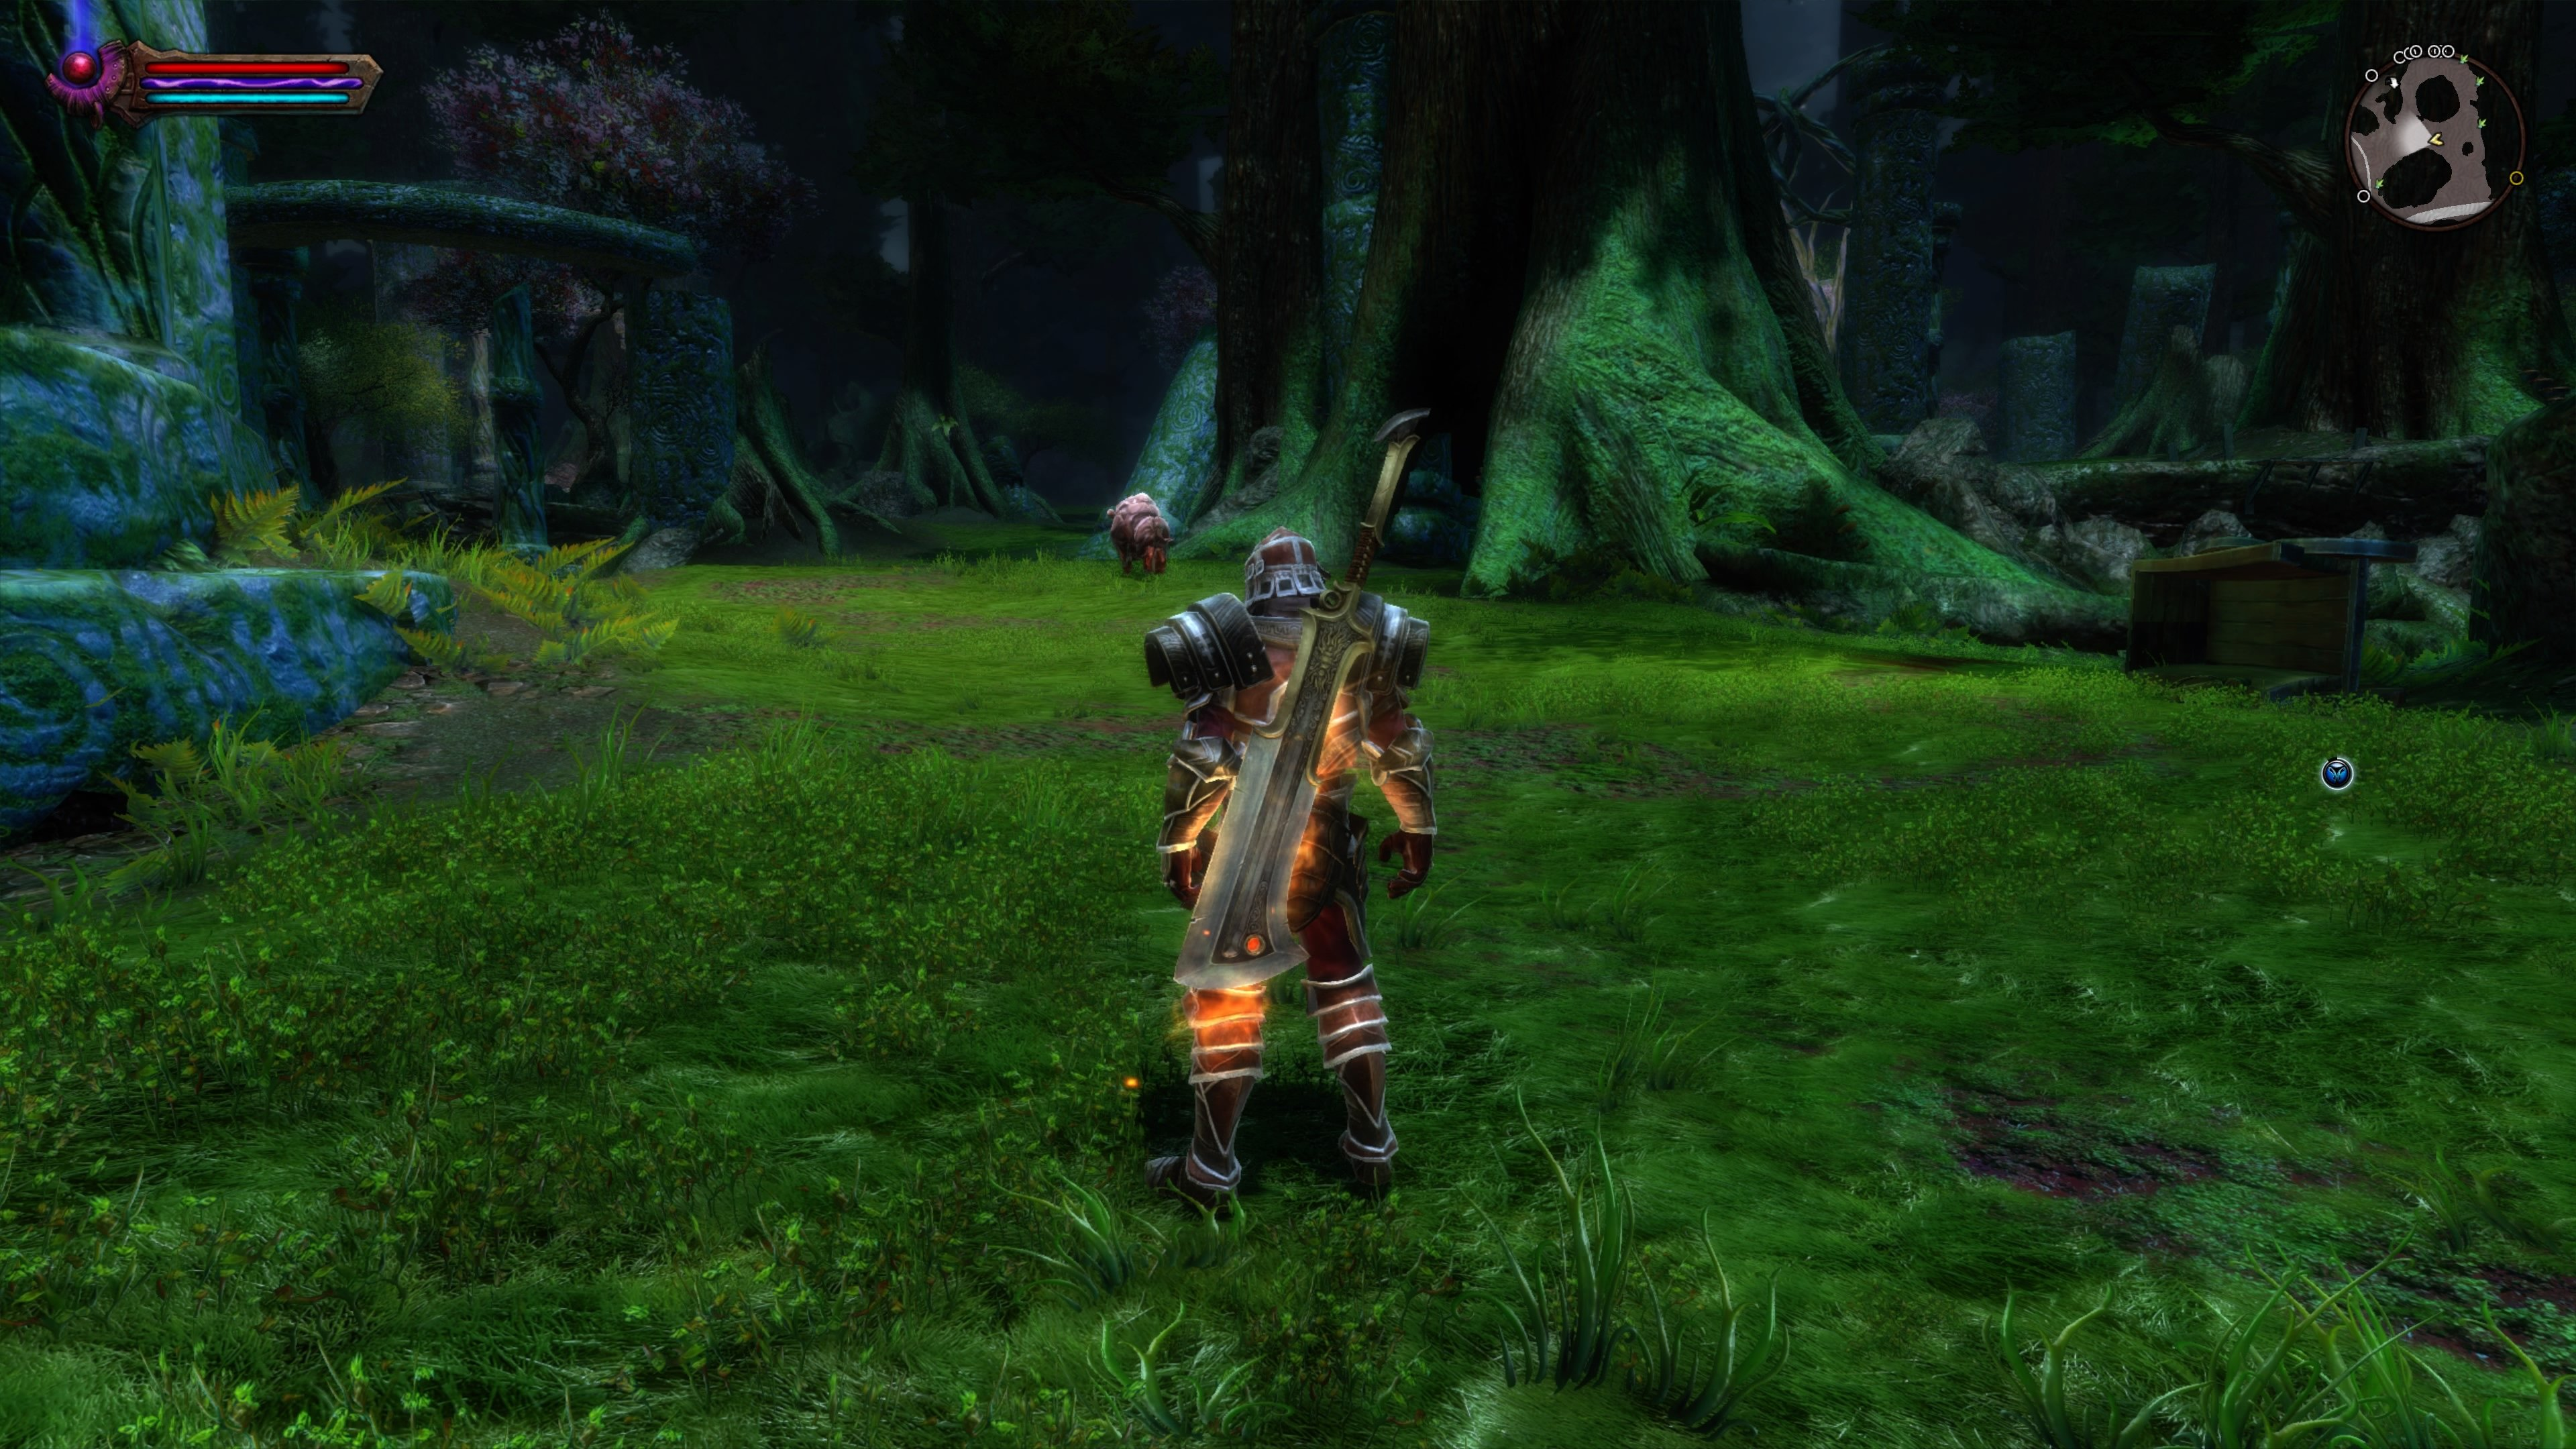 Screenshot for the game Kingdoms of Amalur: Re-Reckoning [SC:6879 Update_5] (2020)  download torrent RePack from R. G. Mechanics